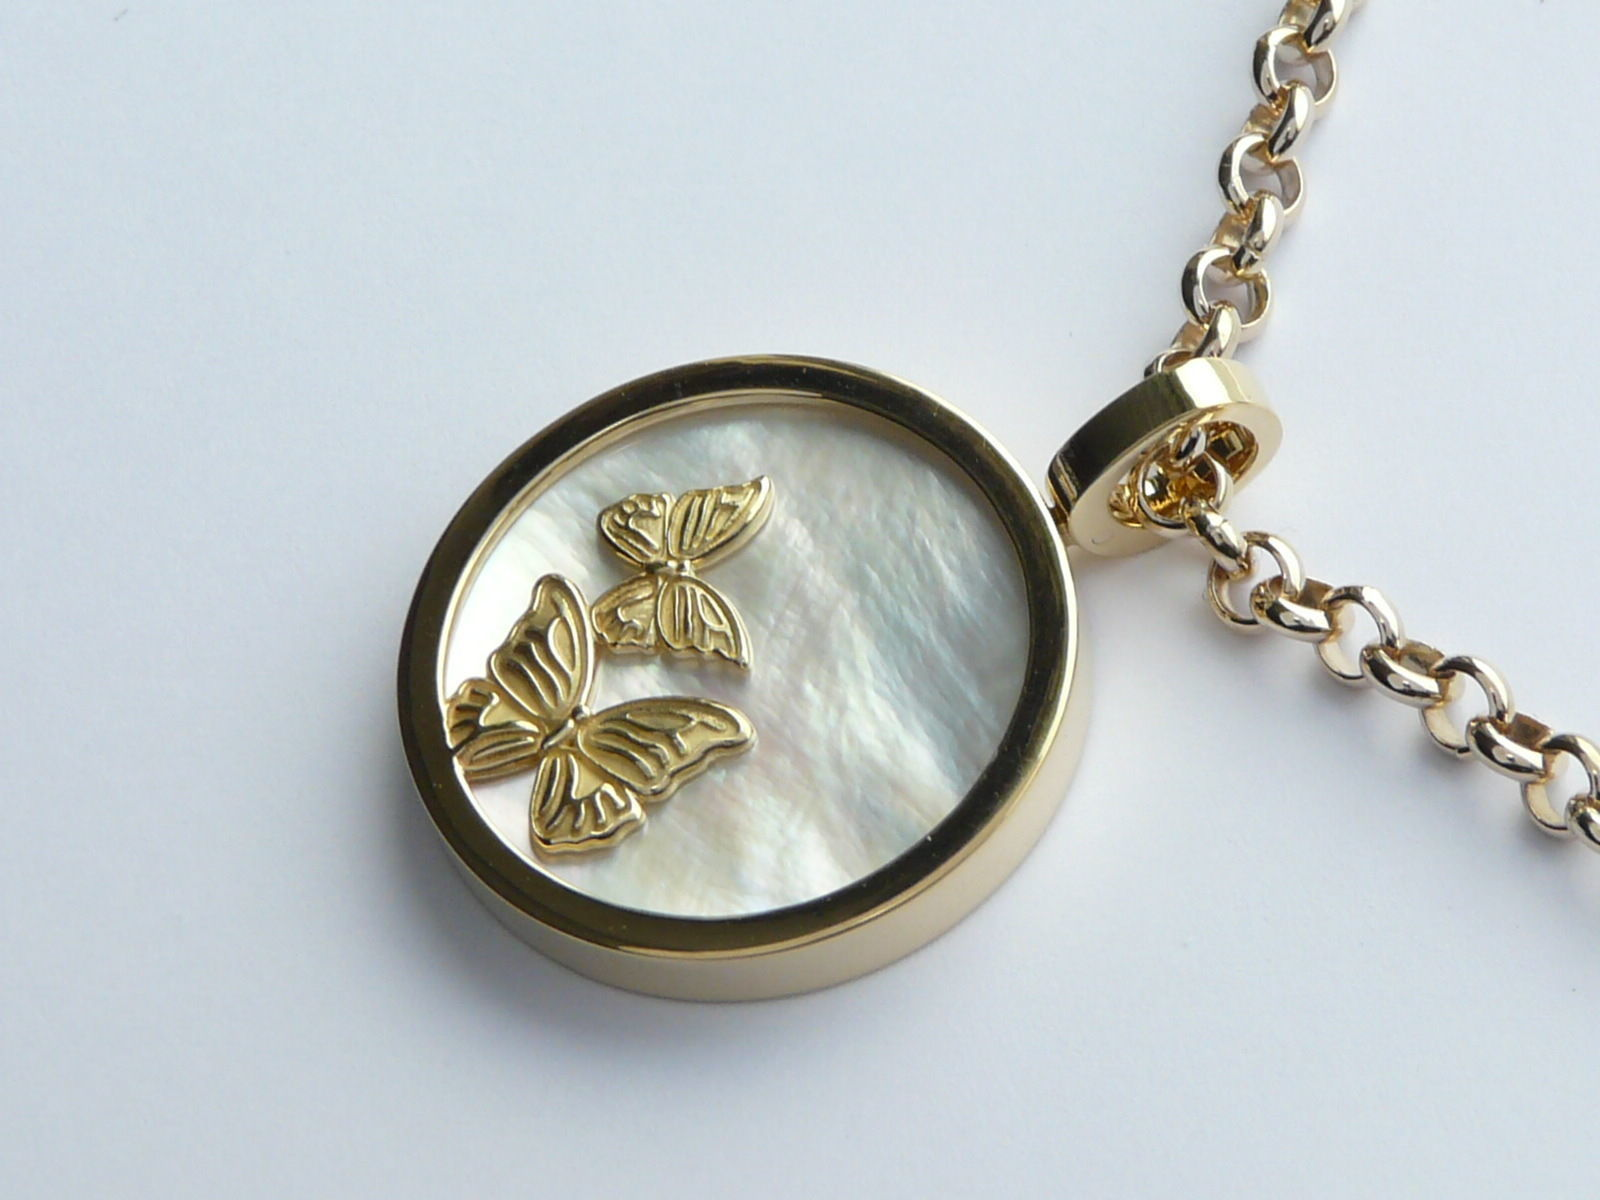 DOUBLE-SIDED PENDANT